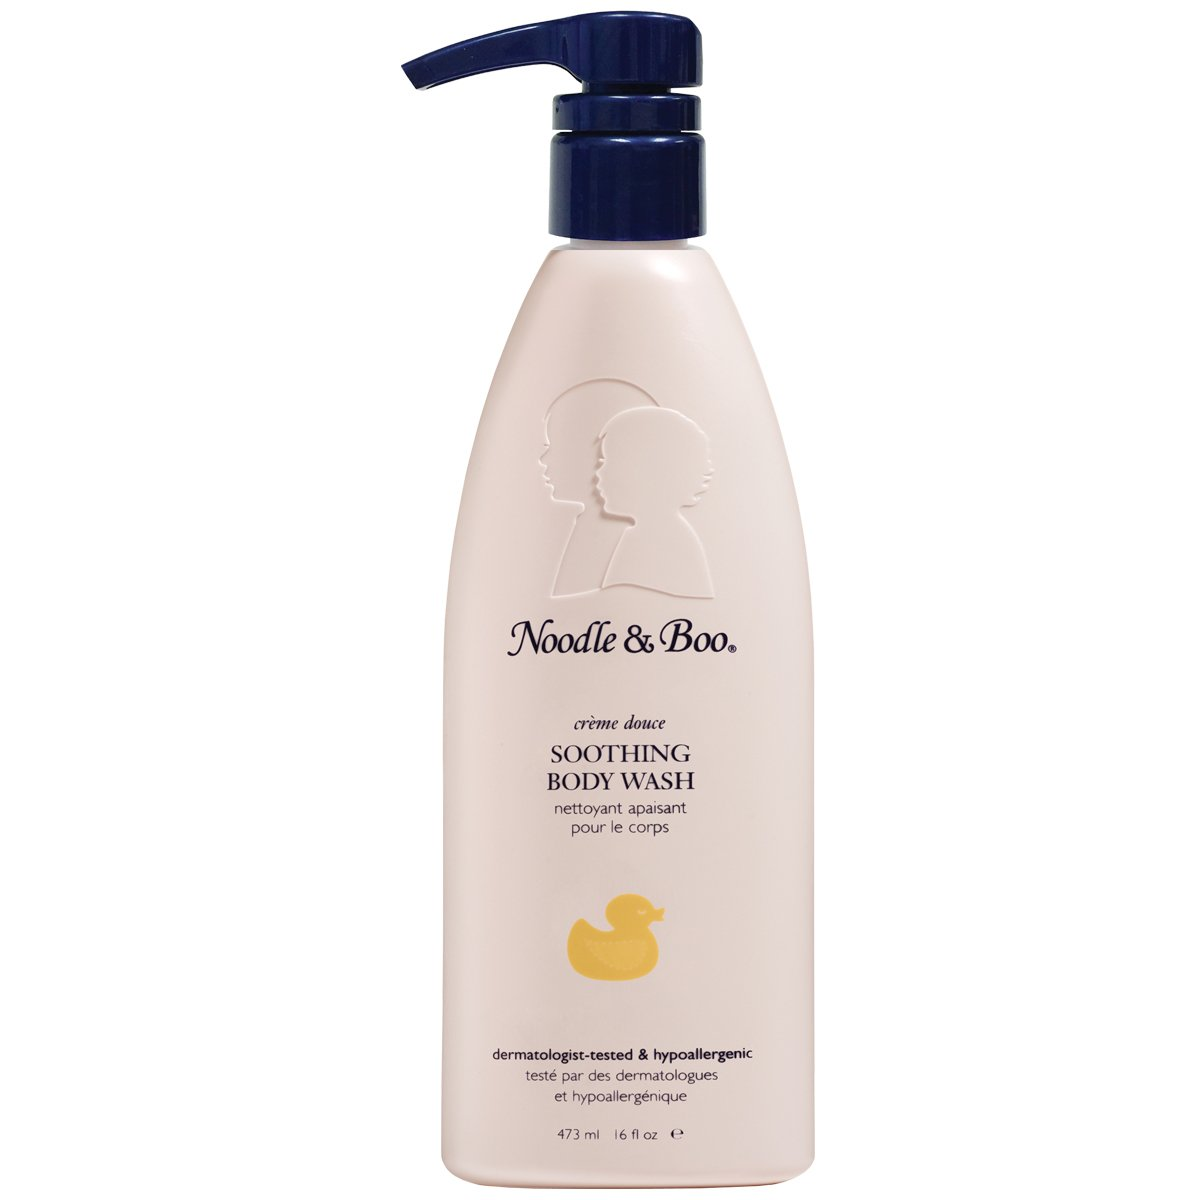 Noodle & Boo Soothing Baby Body Wash for Gentle Baby Care, 16 Oz